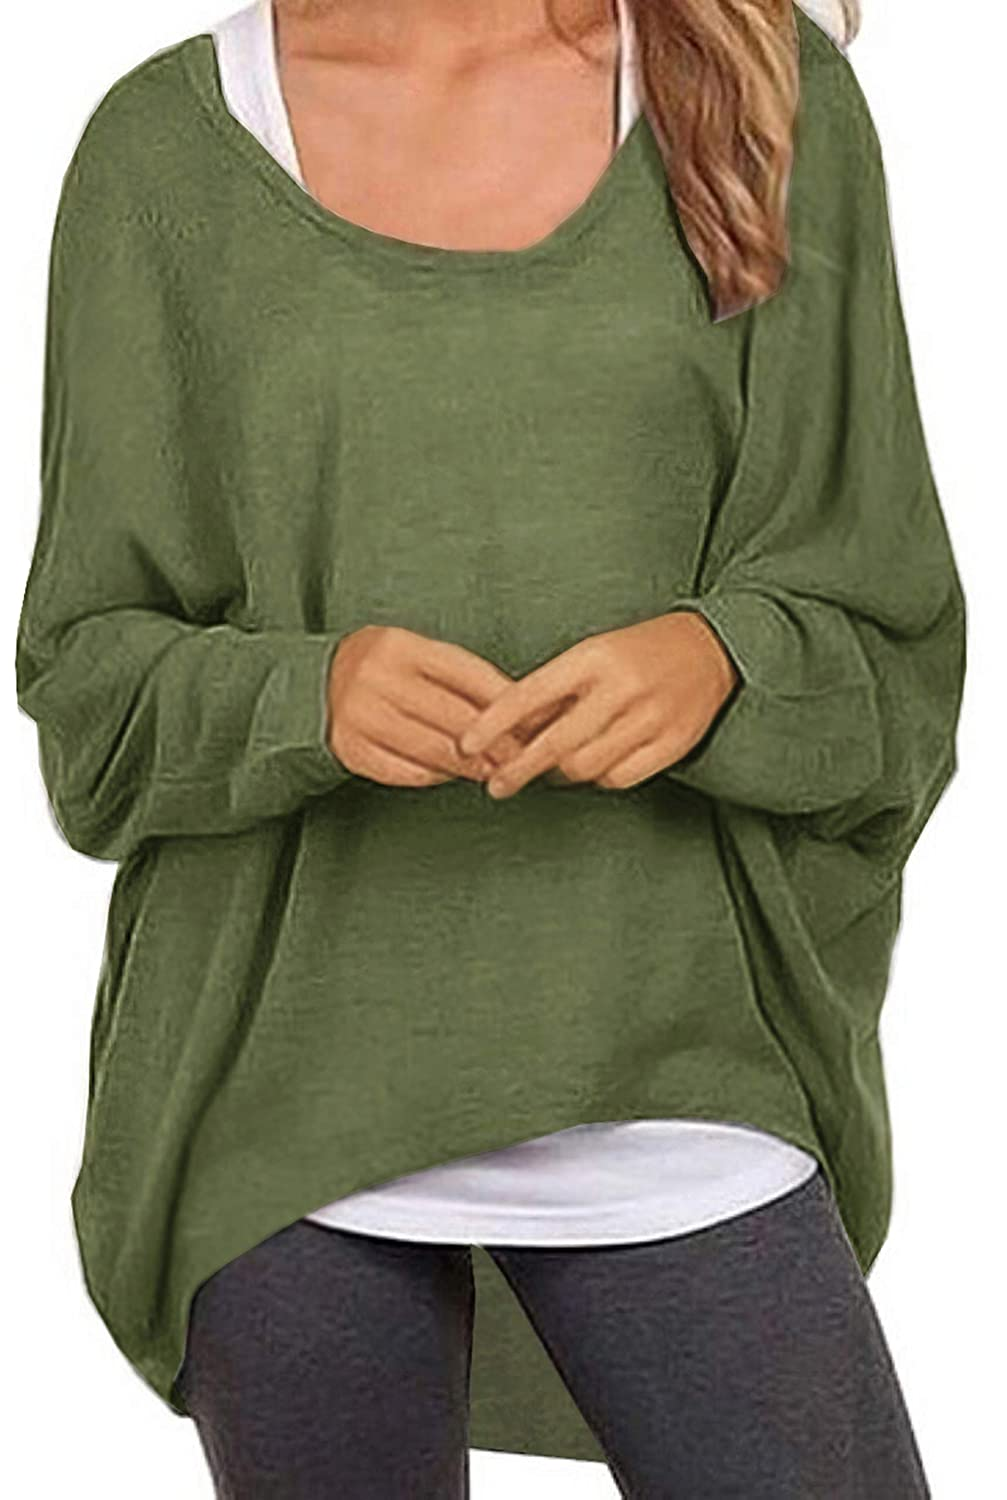 de58875ce6ad9 UGET Women s Sweater Casual Oversized Baggy Off-Shoulder Shirts Batwing Sleeve  Pullover Shirts Tops at Amazon Women s Clothing store